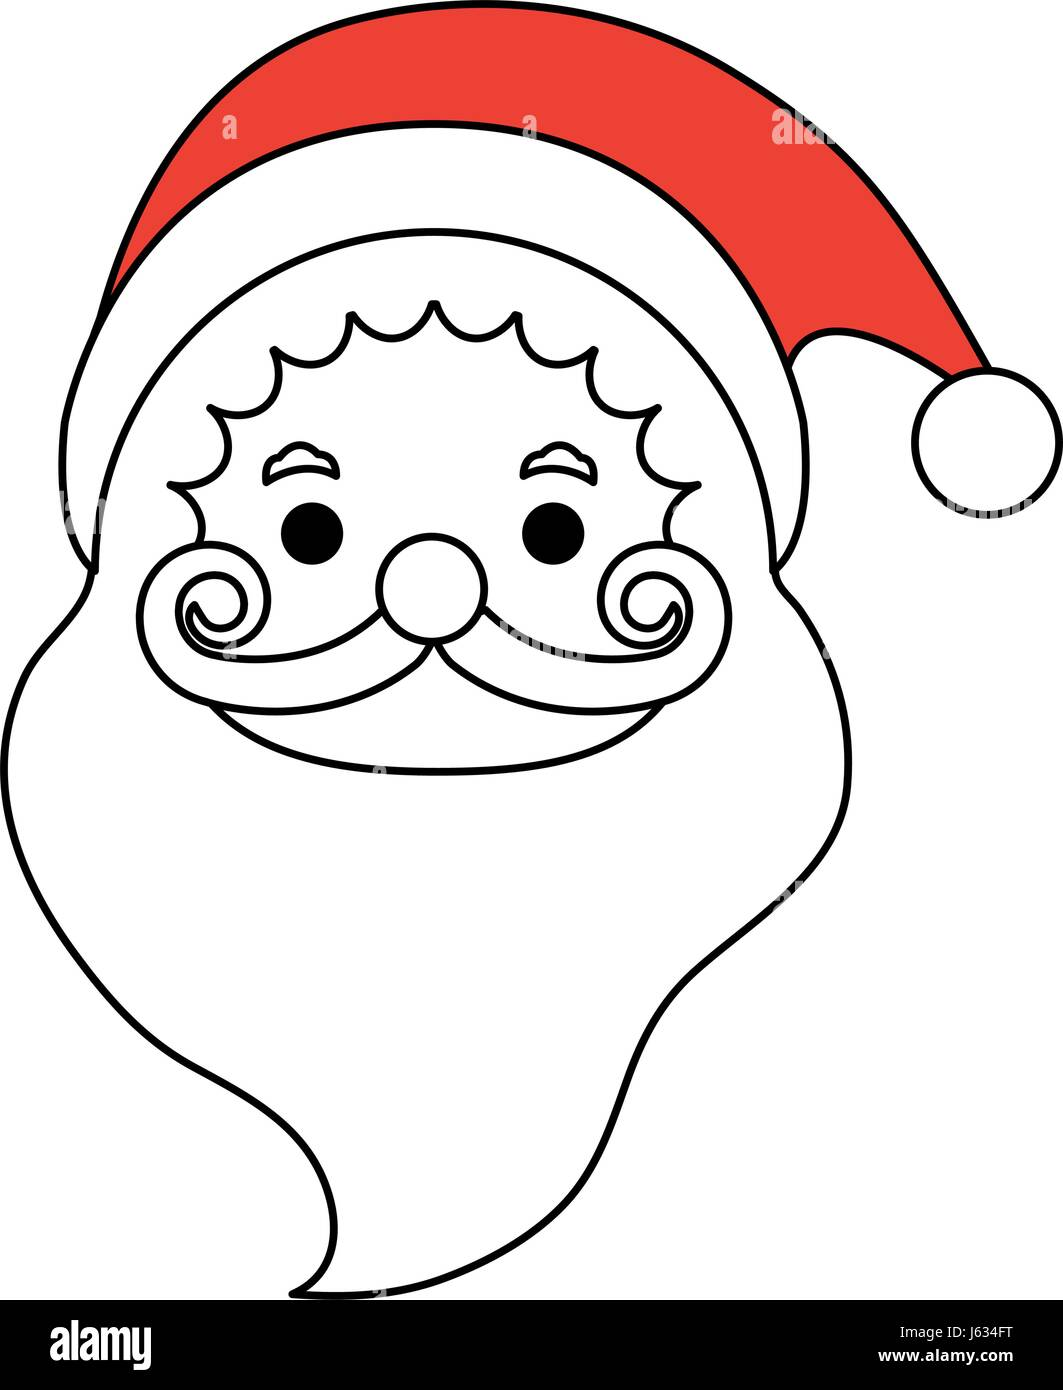 color silhouette image cartoon front view face santa claus stock